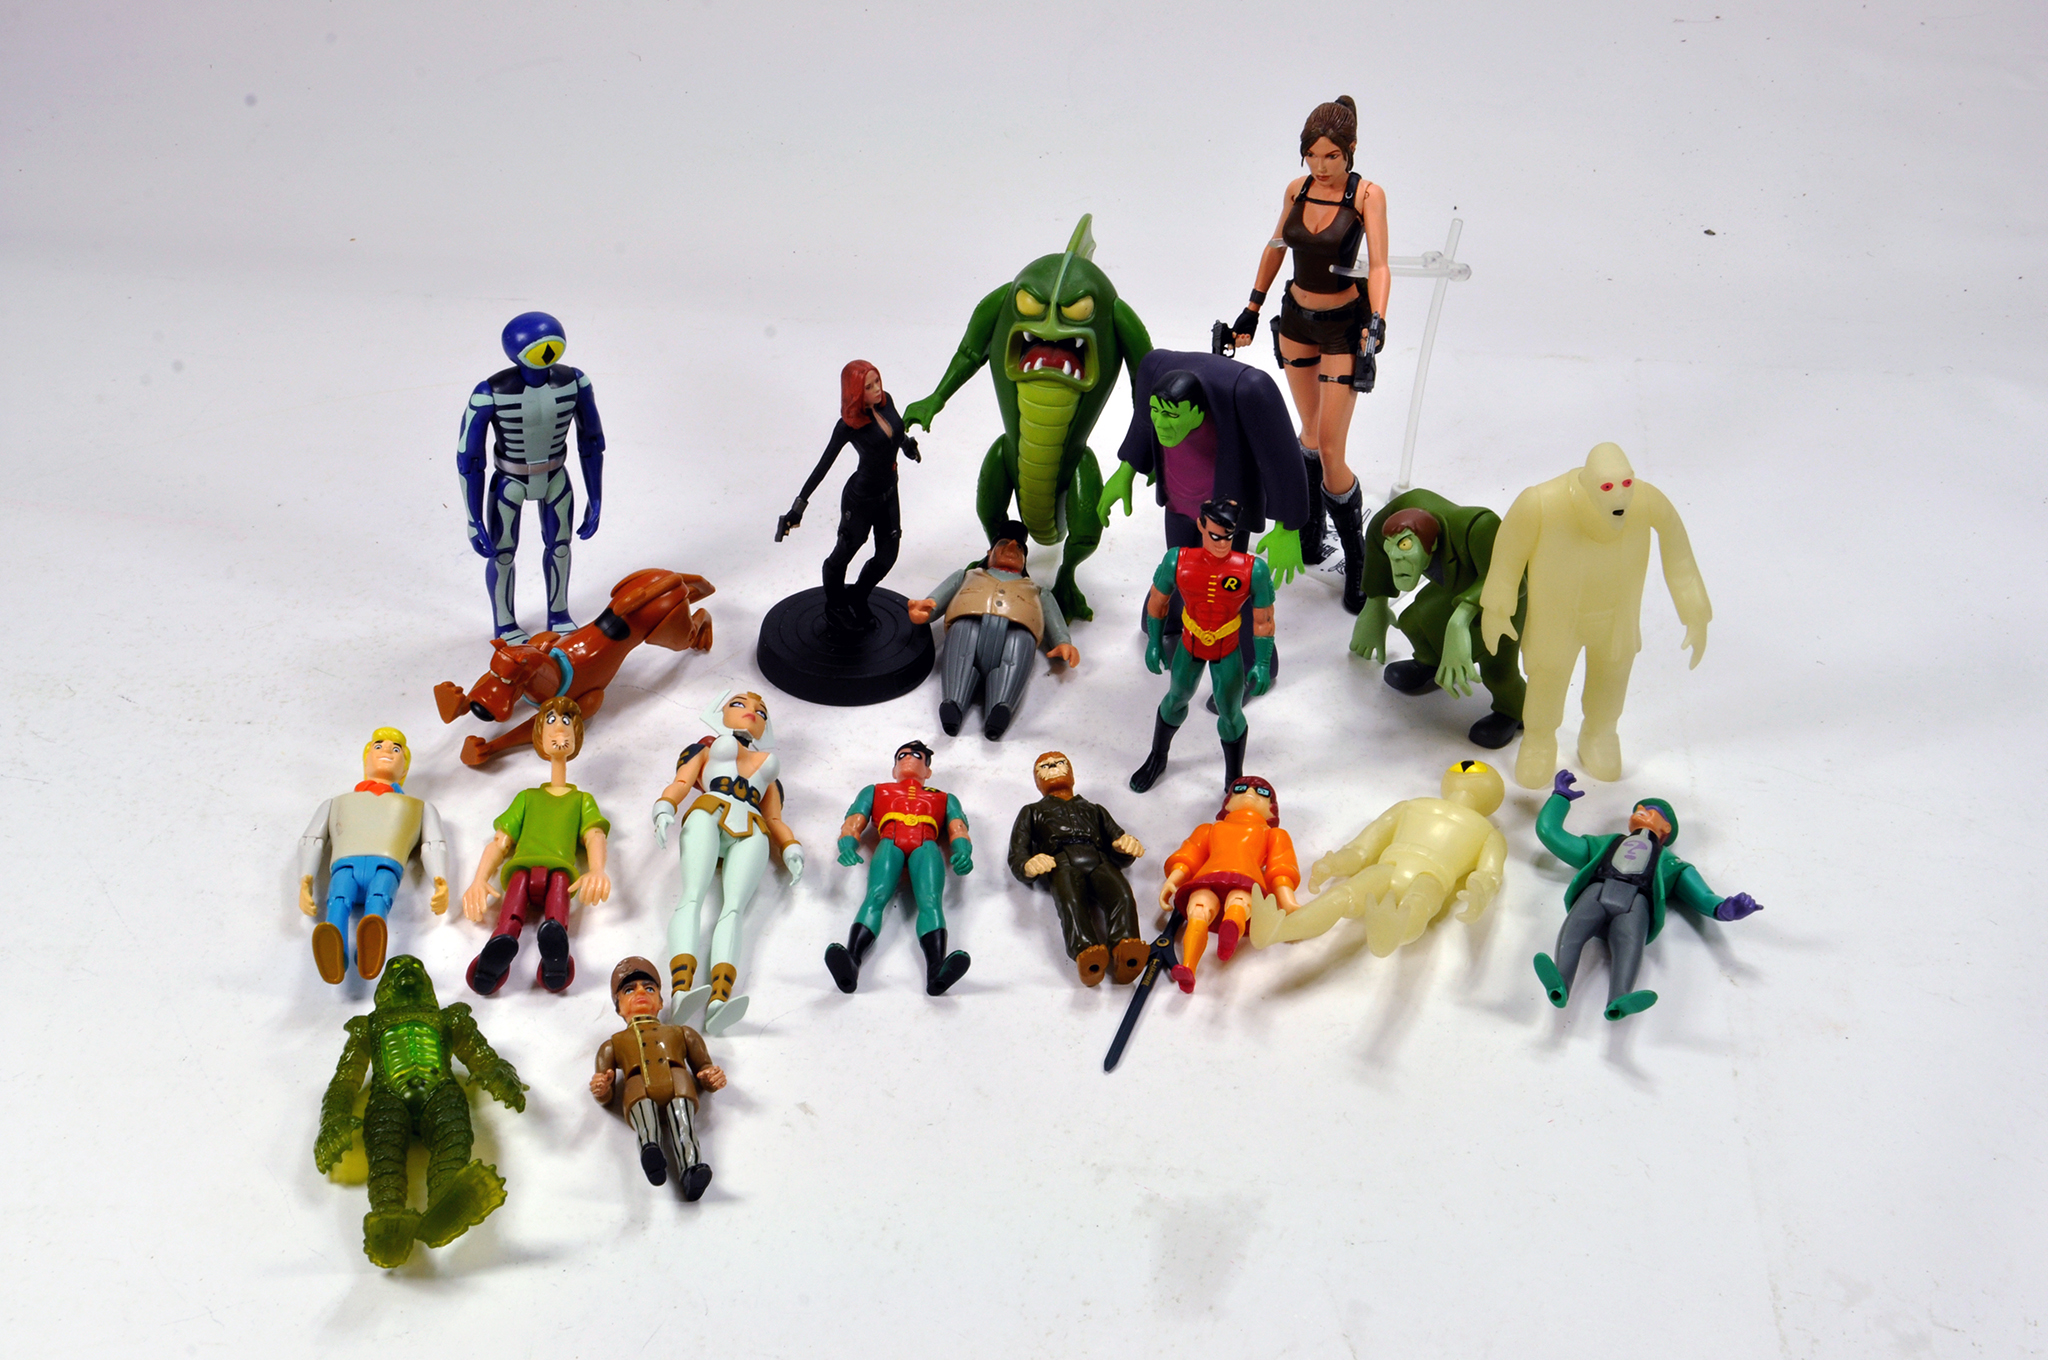 Lot 582 - Modern Issue TV Related Plastic Figure group comprising Scooby Doo and others.